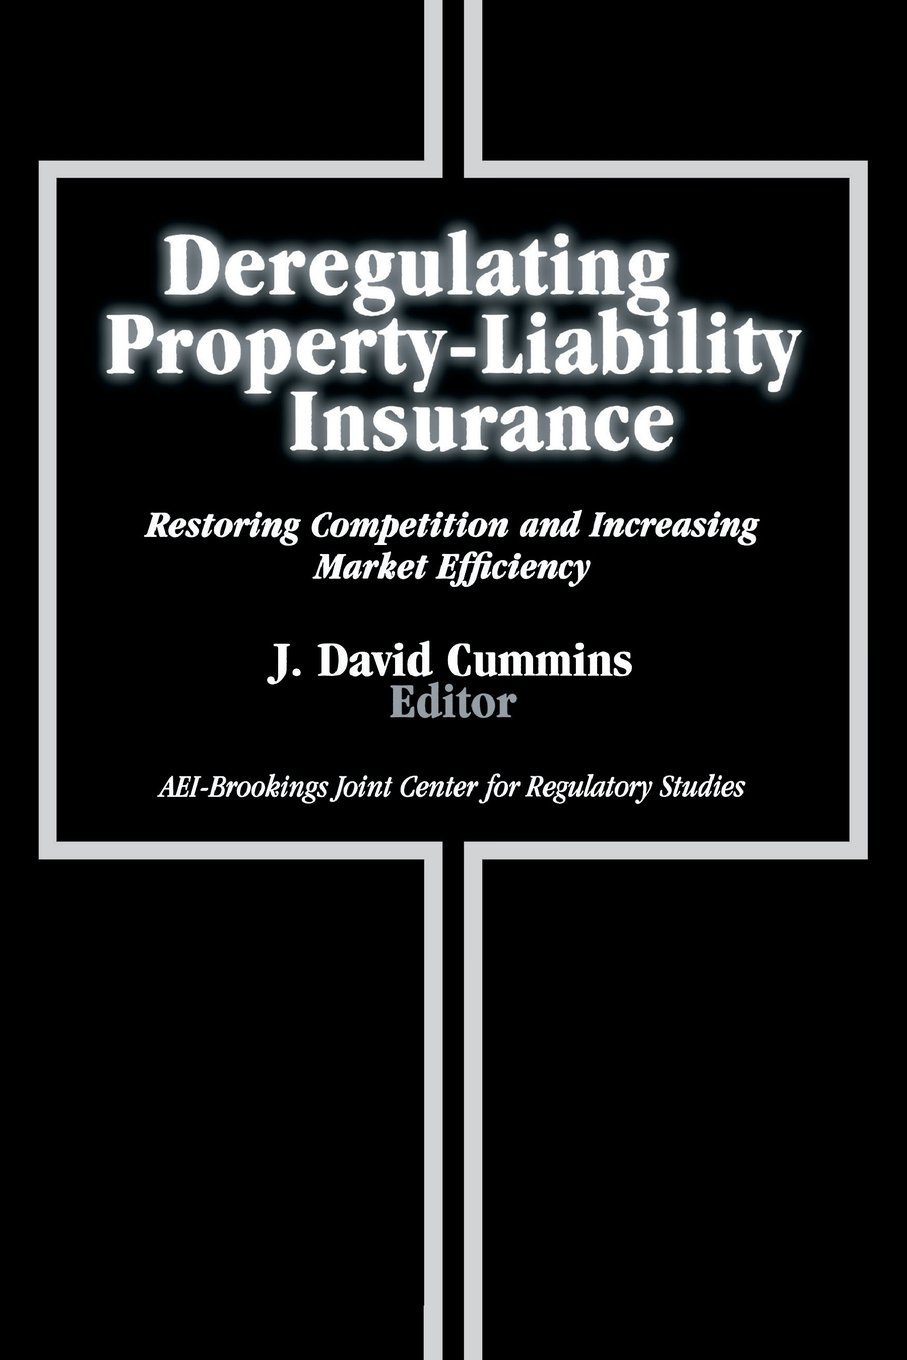 Deregulating Property-Liability Insurance: Restoring Competition and Increasing Market Efficiency (AEI-Brookings Joint Center for Regulatory Studies)